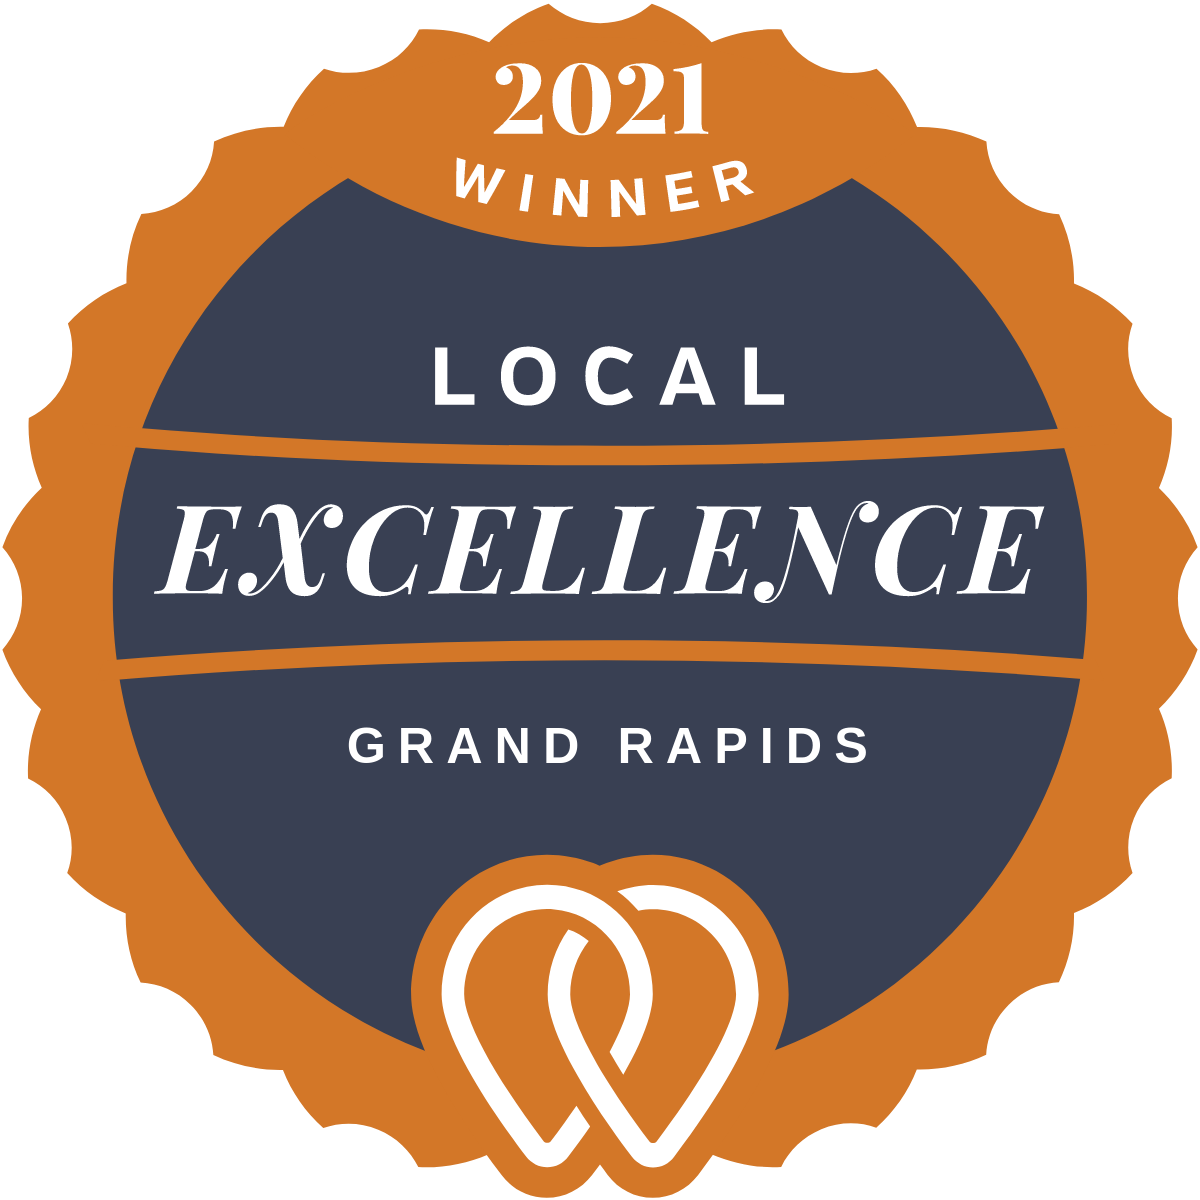 2021 Local Excellence Winner in Grand Rapids, MI